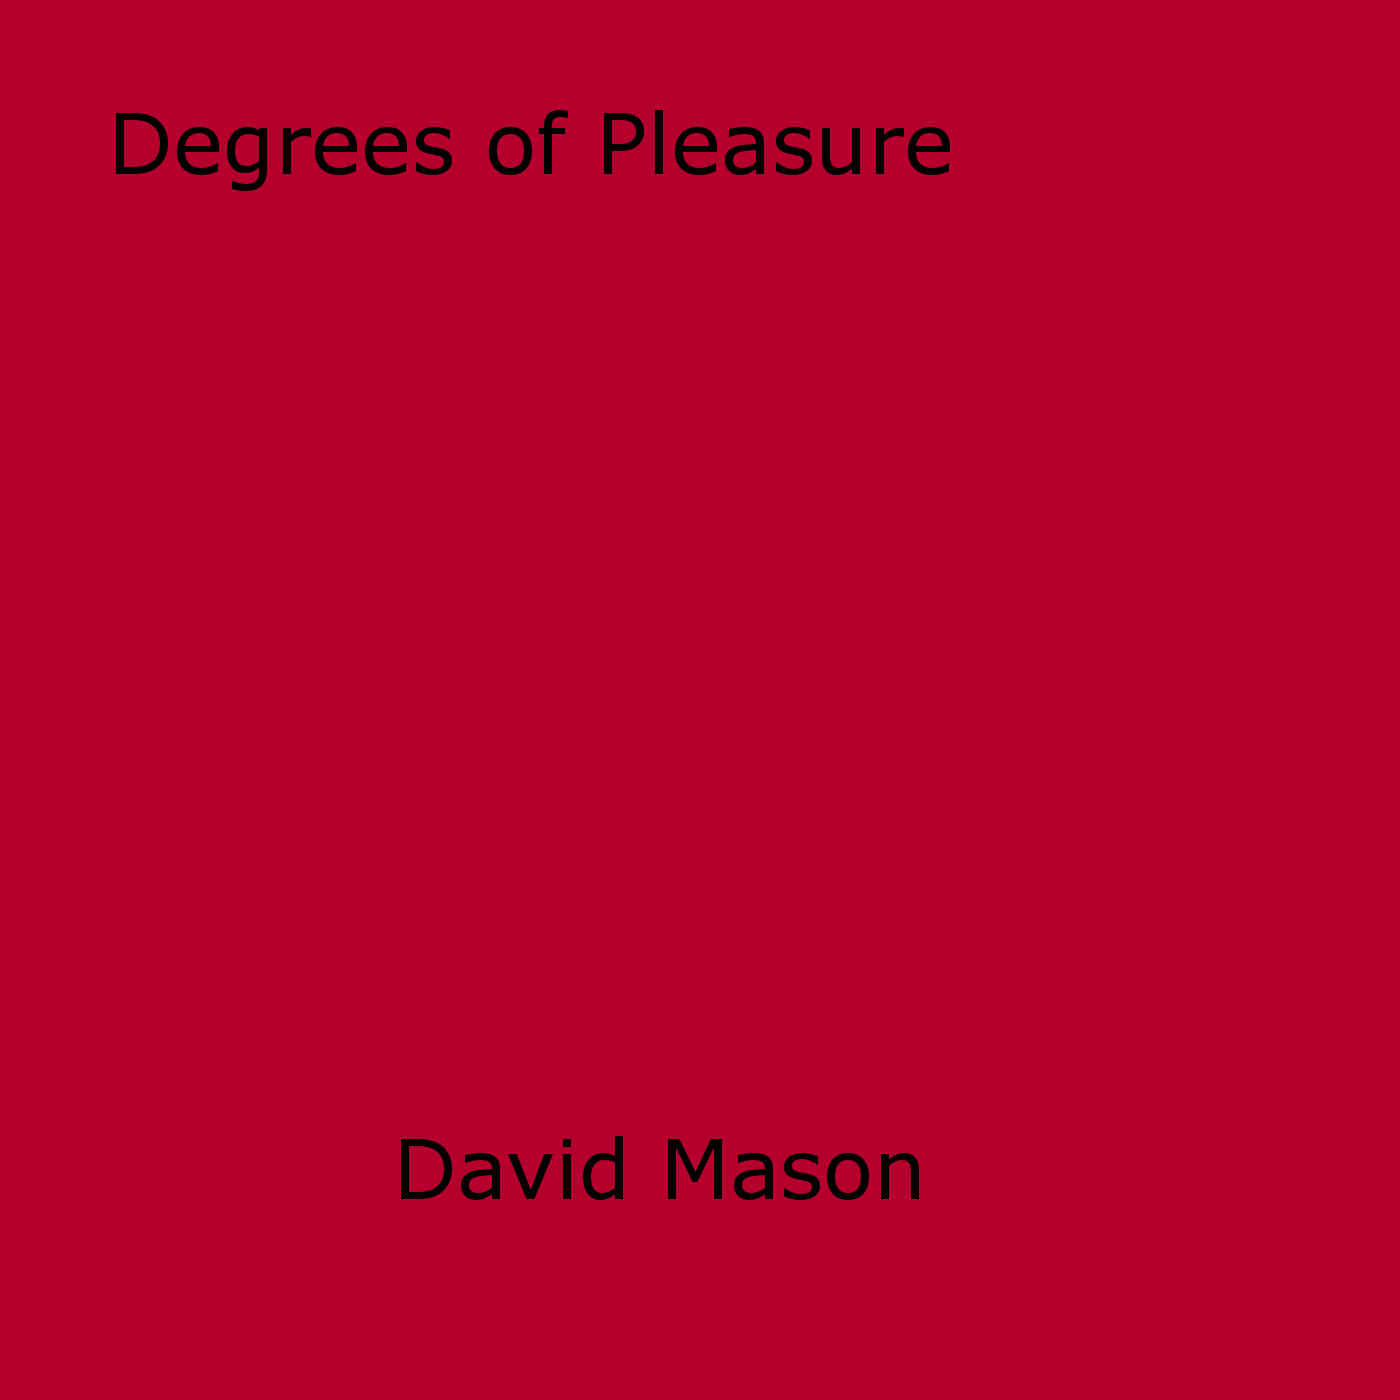 Degrees of Pleasure